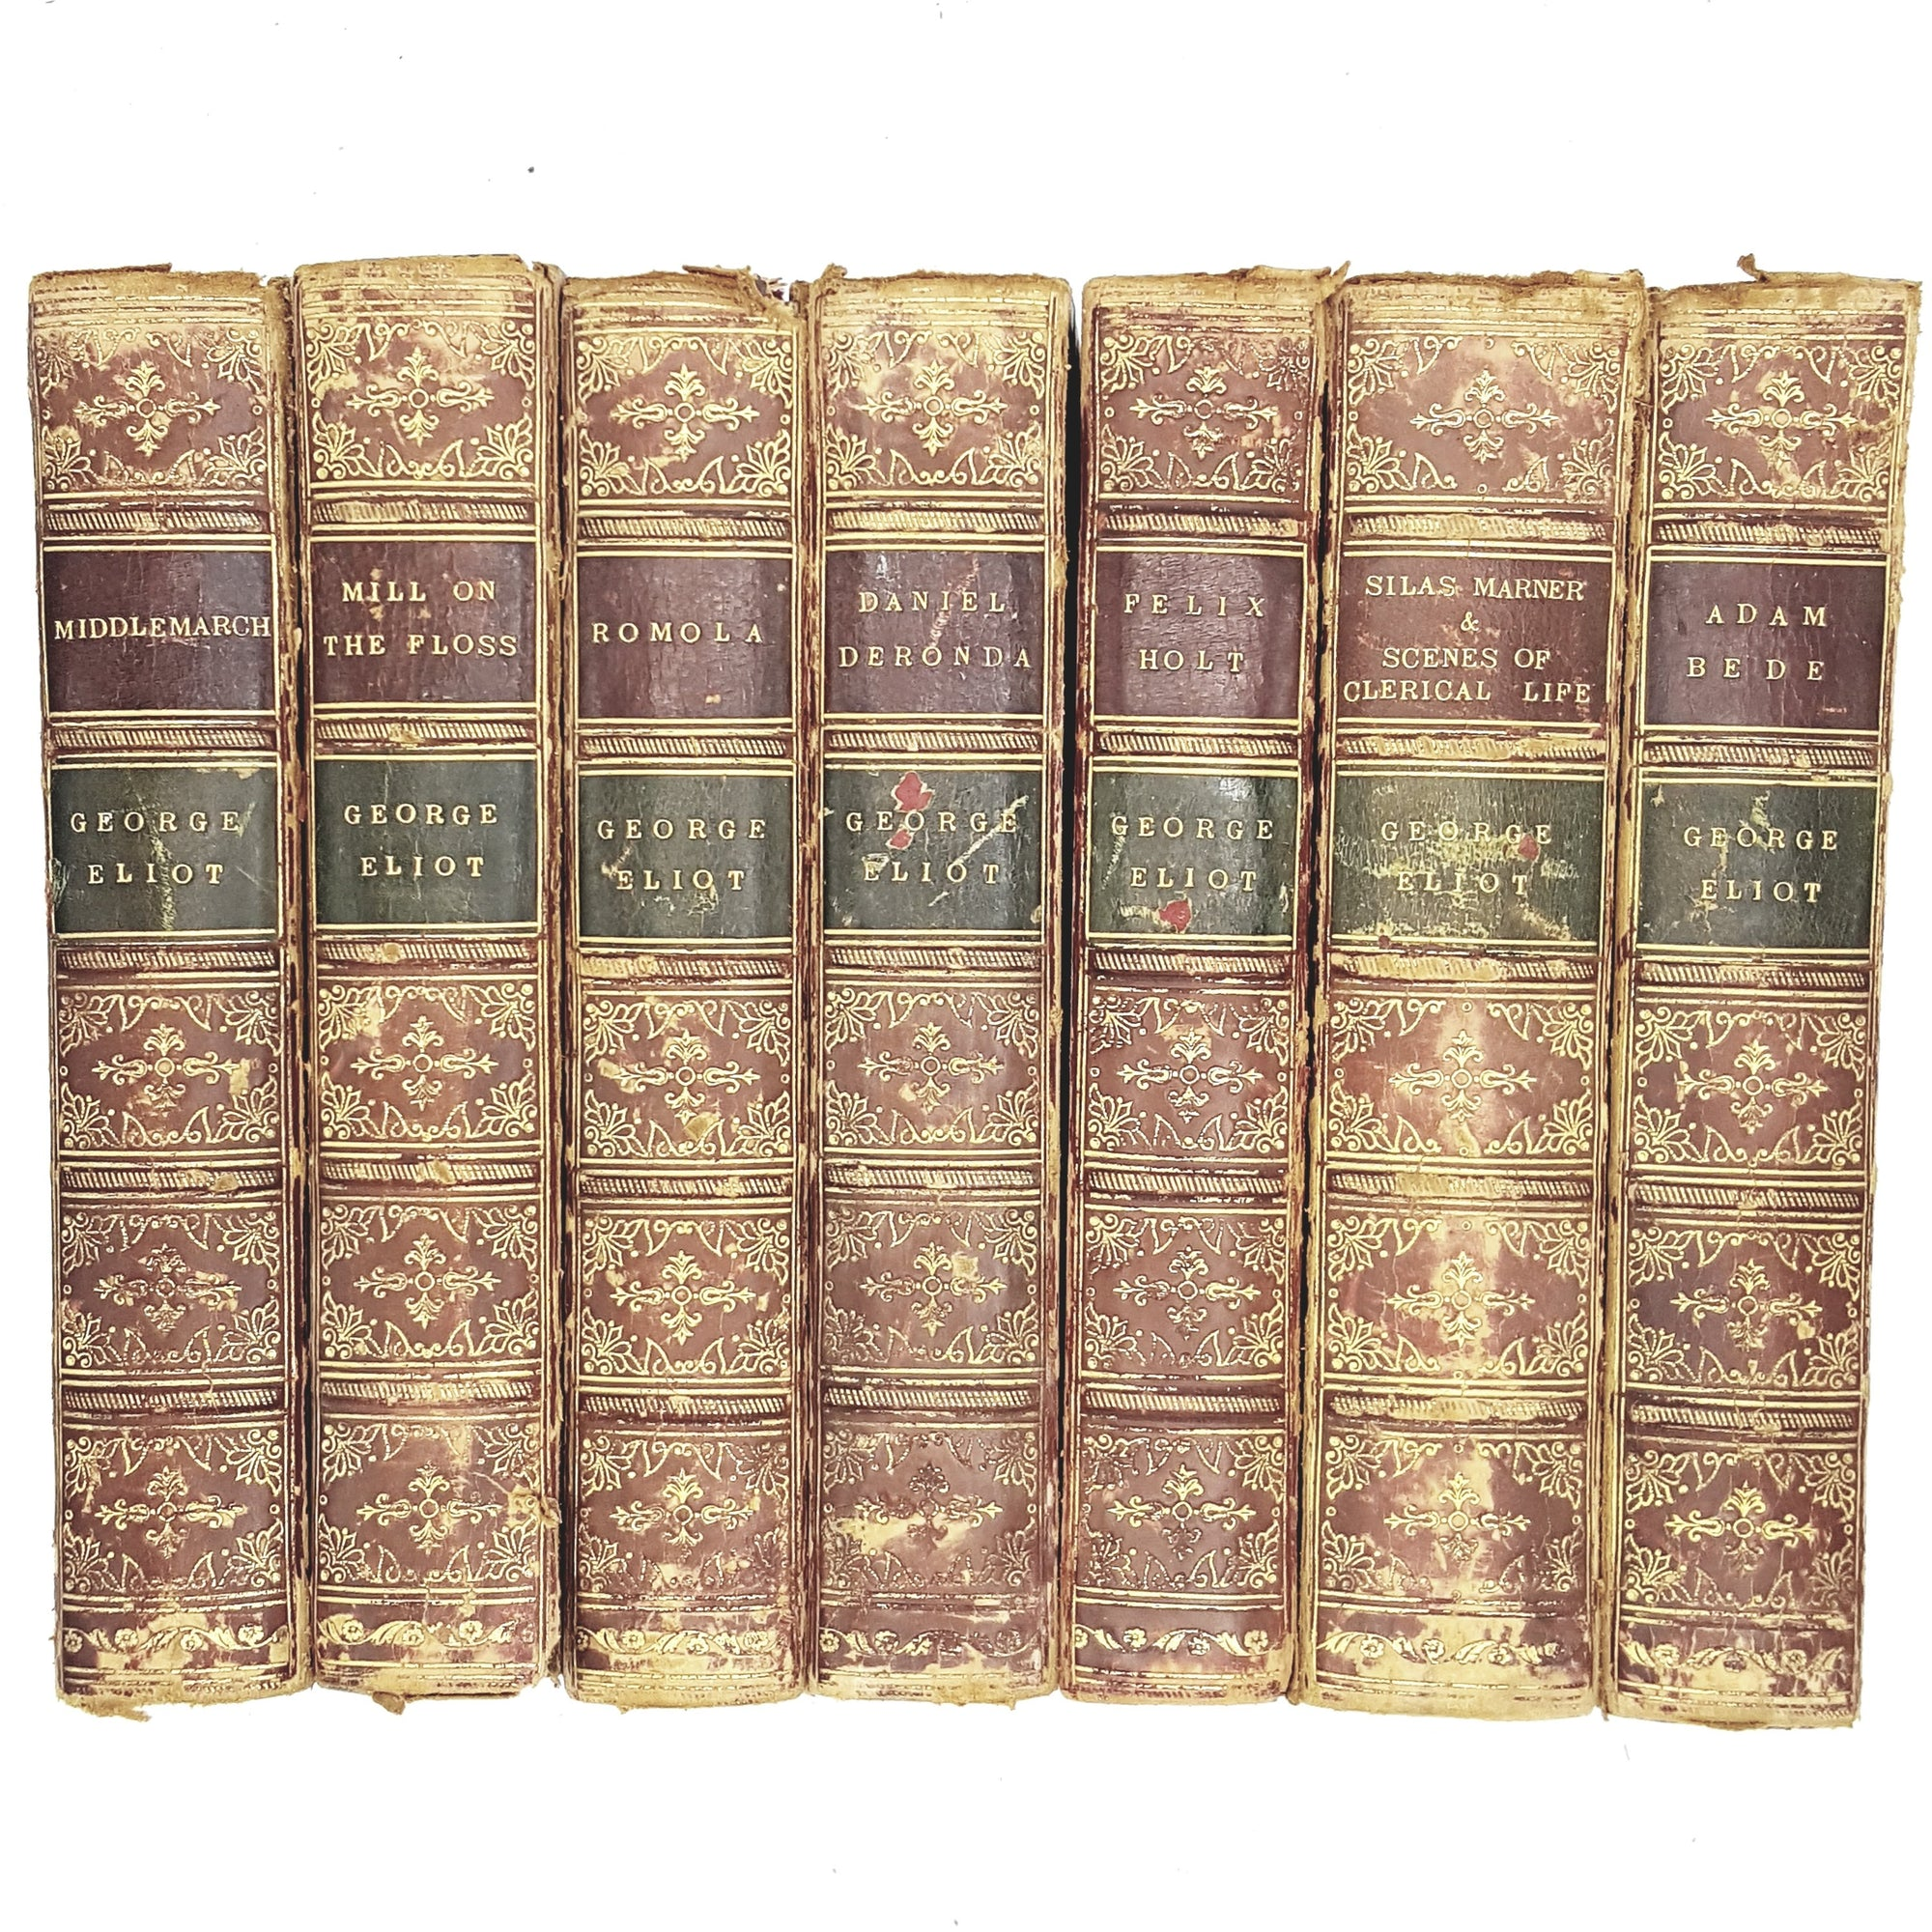 Collection Illustrated Works of George Eliot c1880